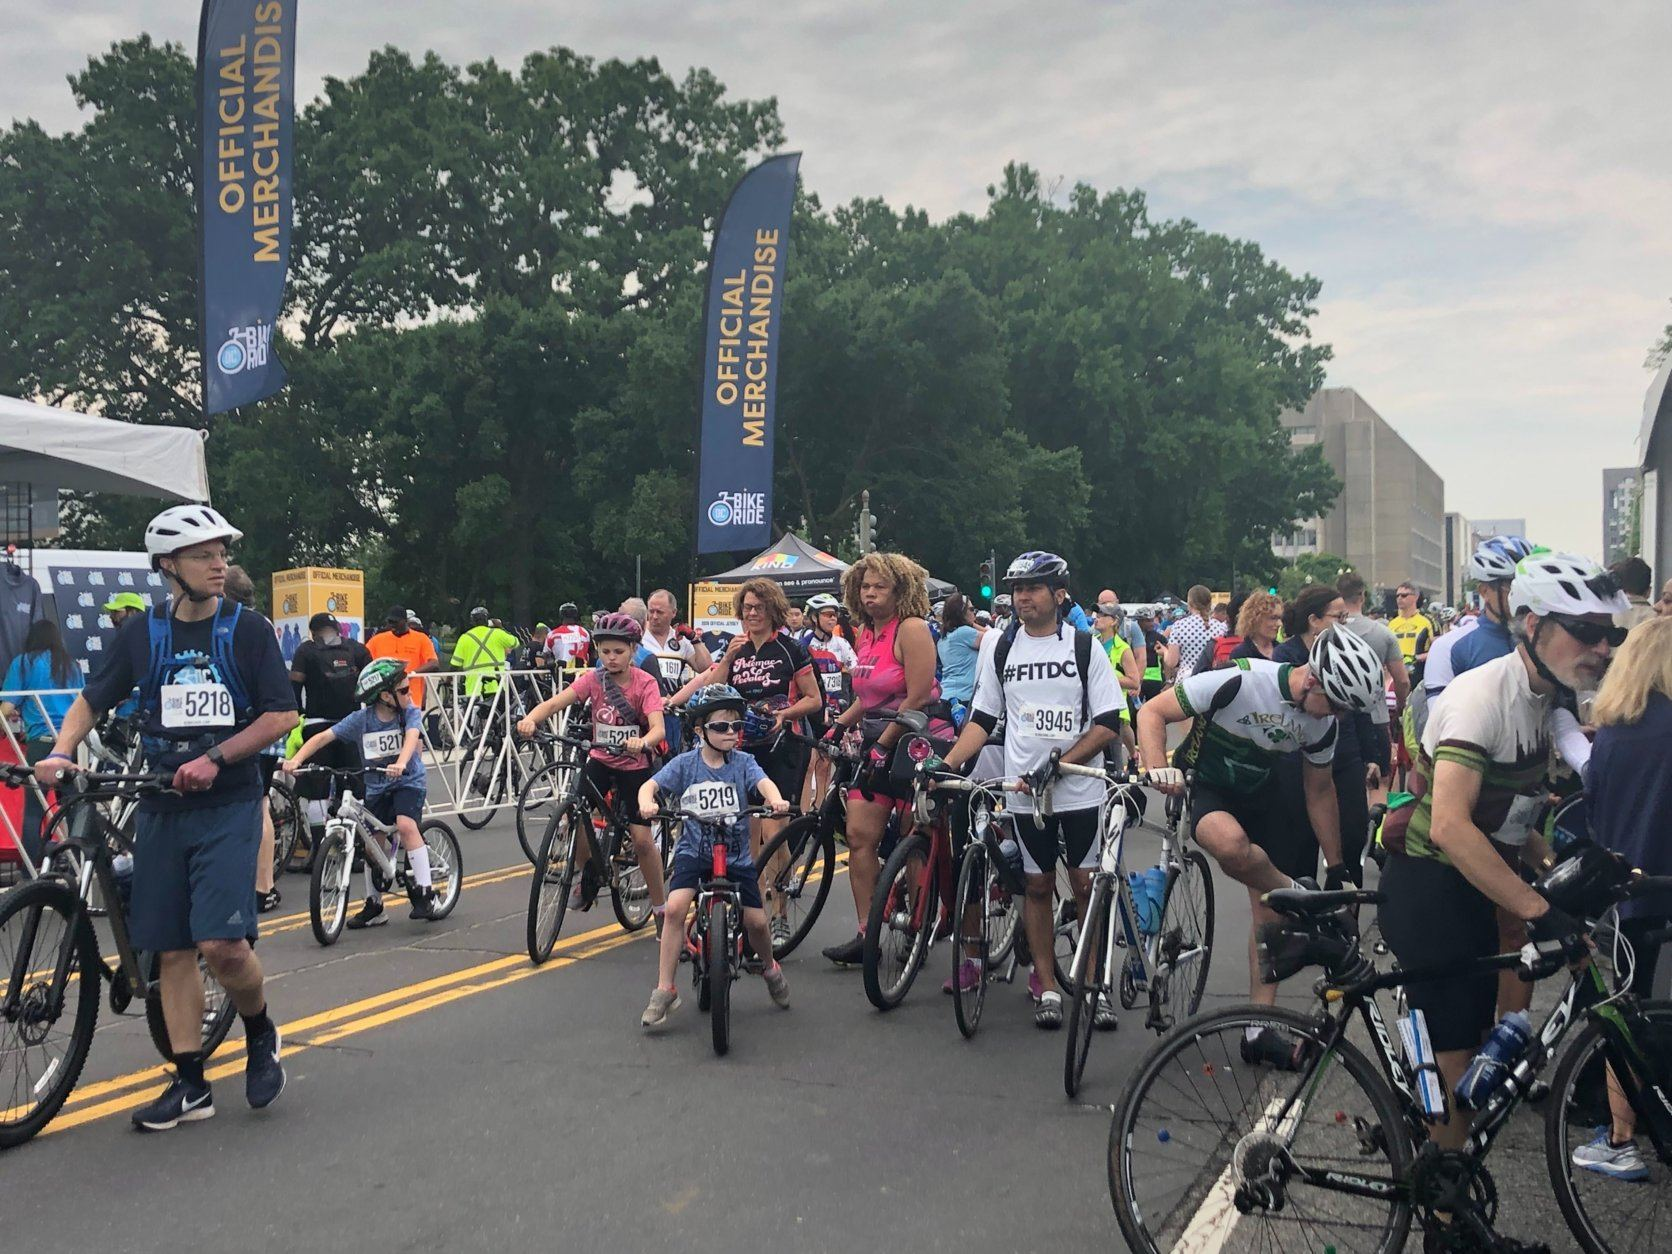 People are eager to explore the city on bikes without the hassle of city traffic to slow them down. (WTOP/Melissa Howell)